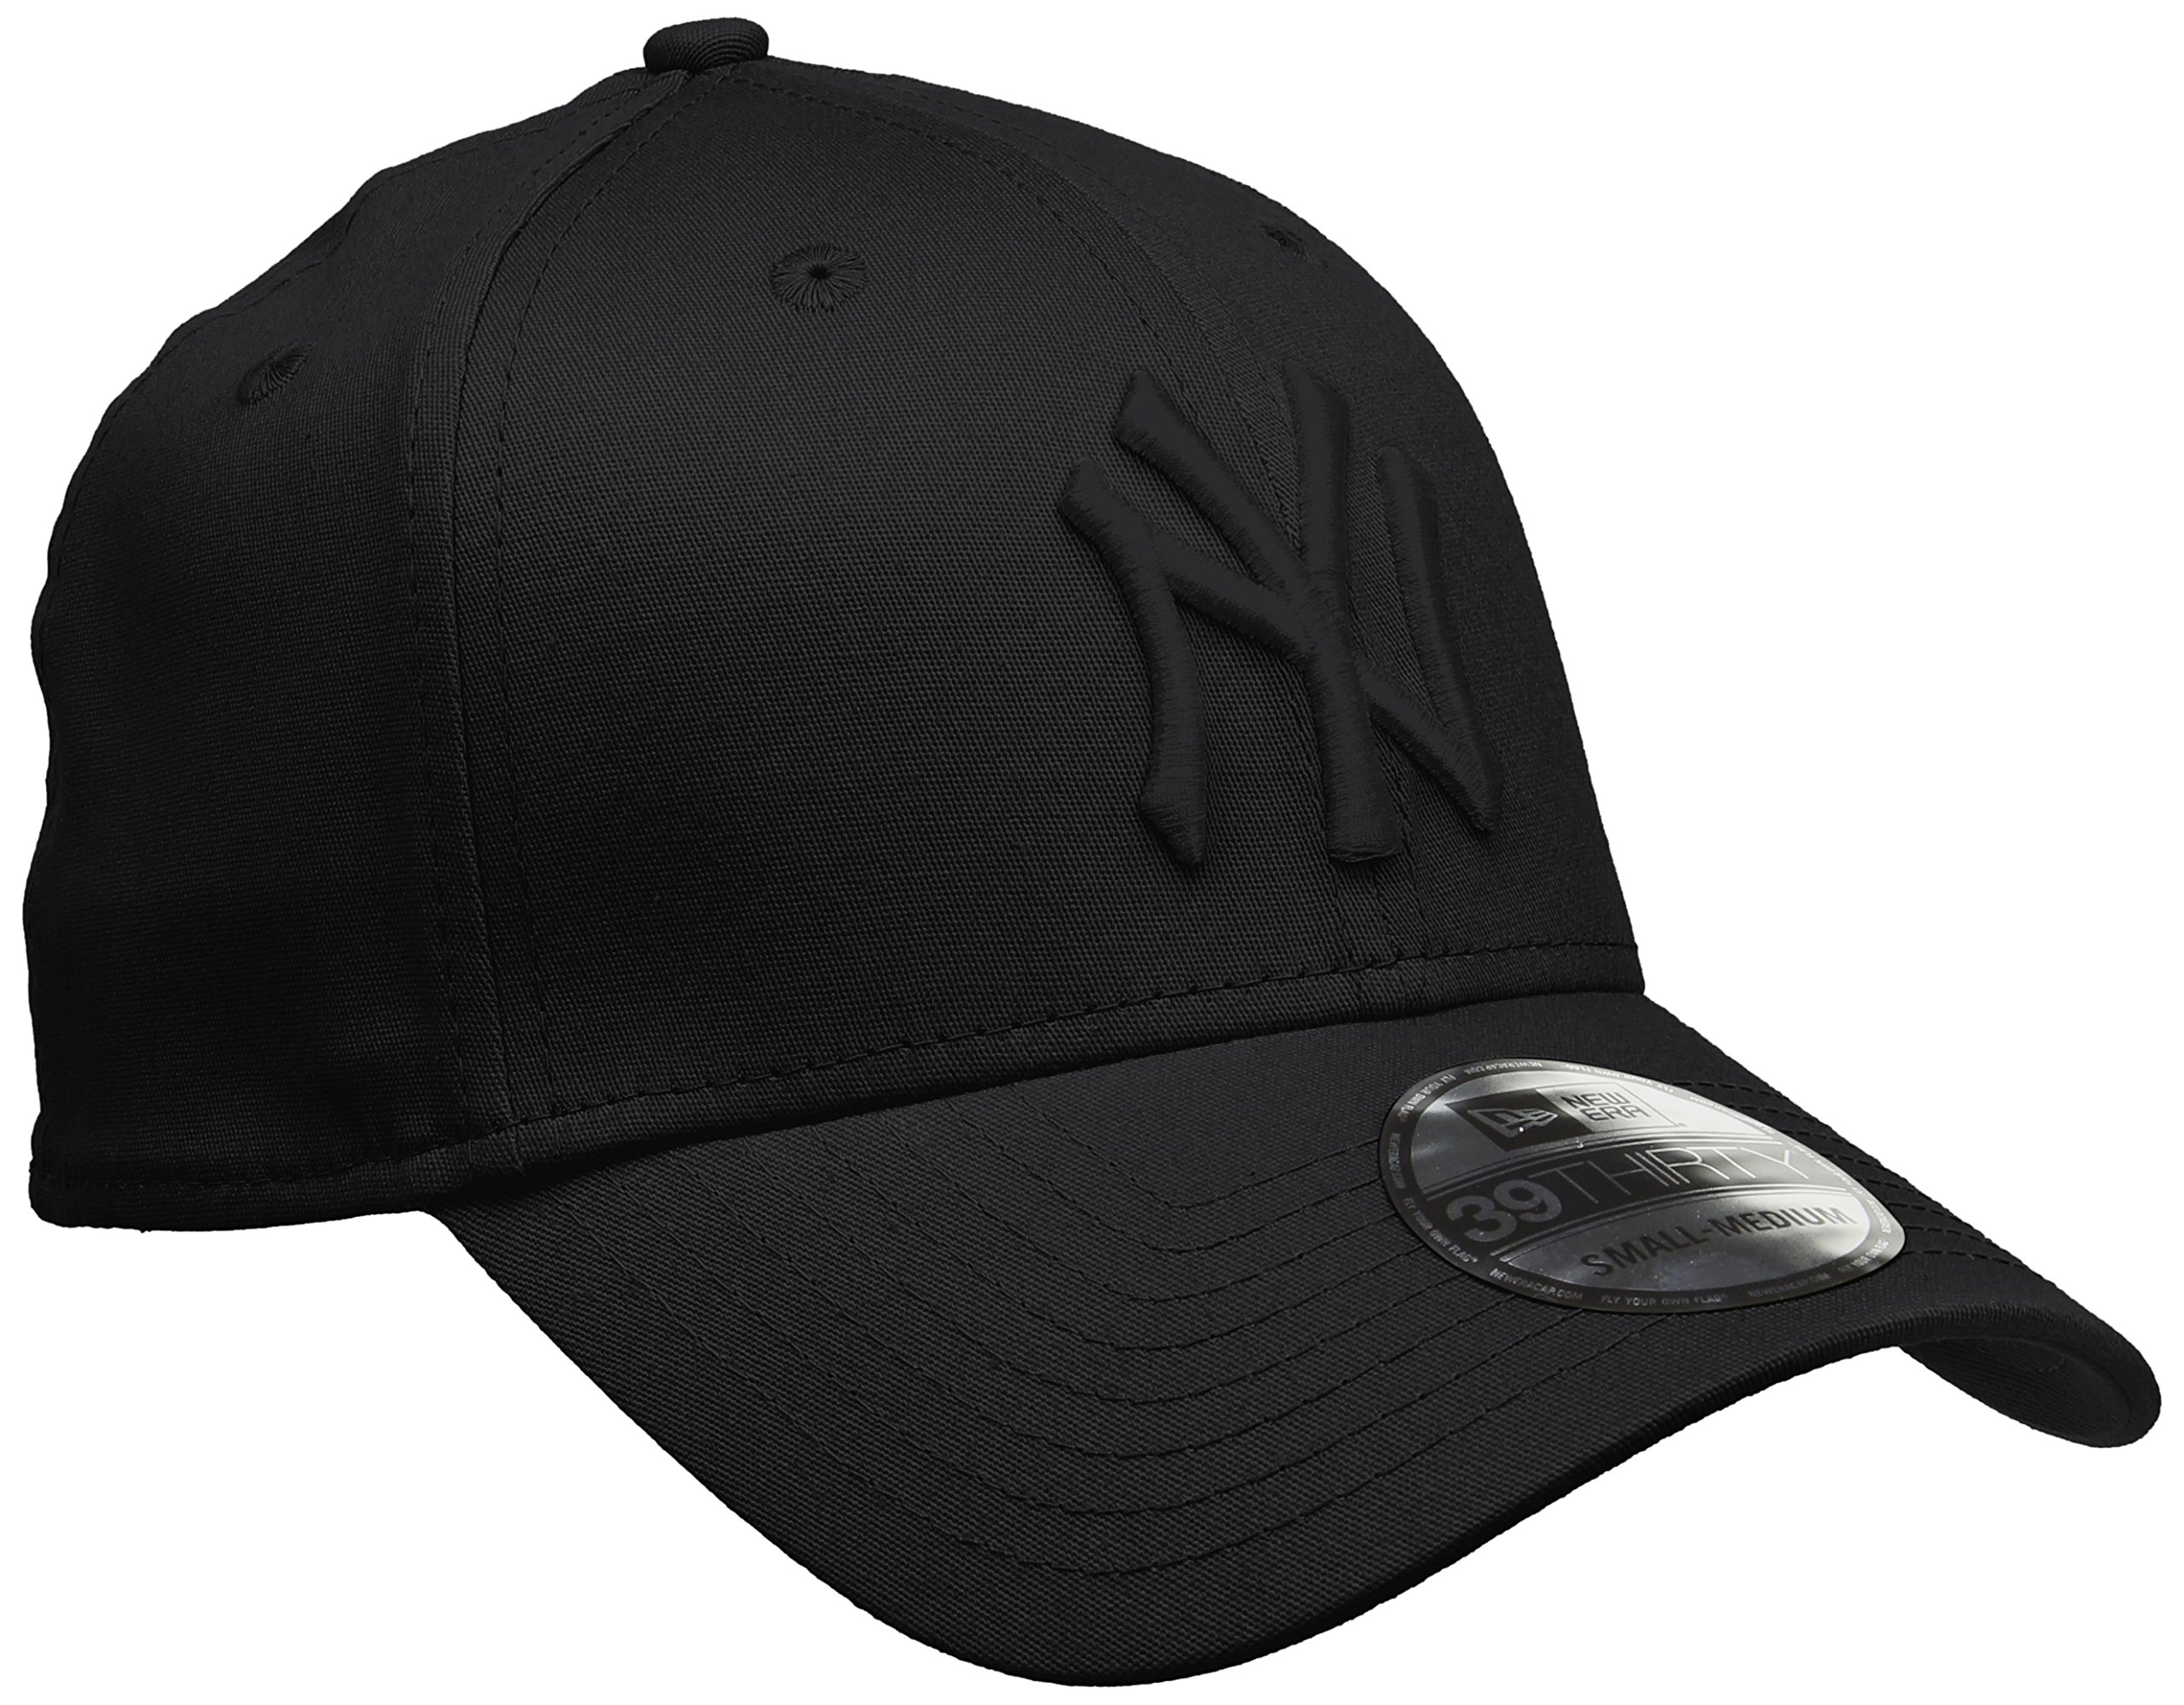 122a9b2a335 New Era Men s MLB Basic NY Yankees 39Thirty Stretch Back Baseball ...